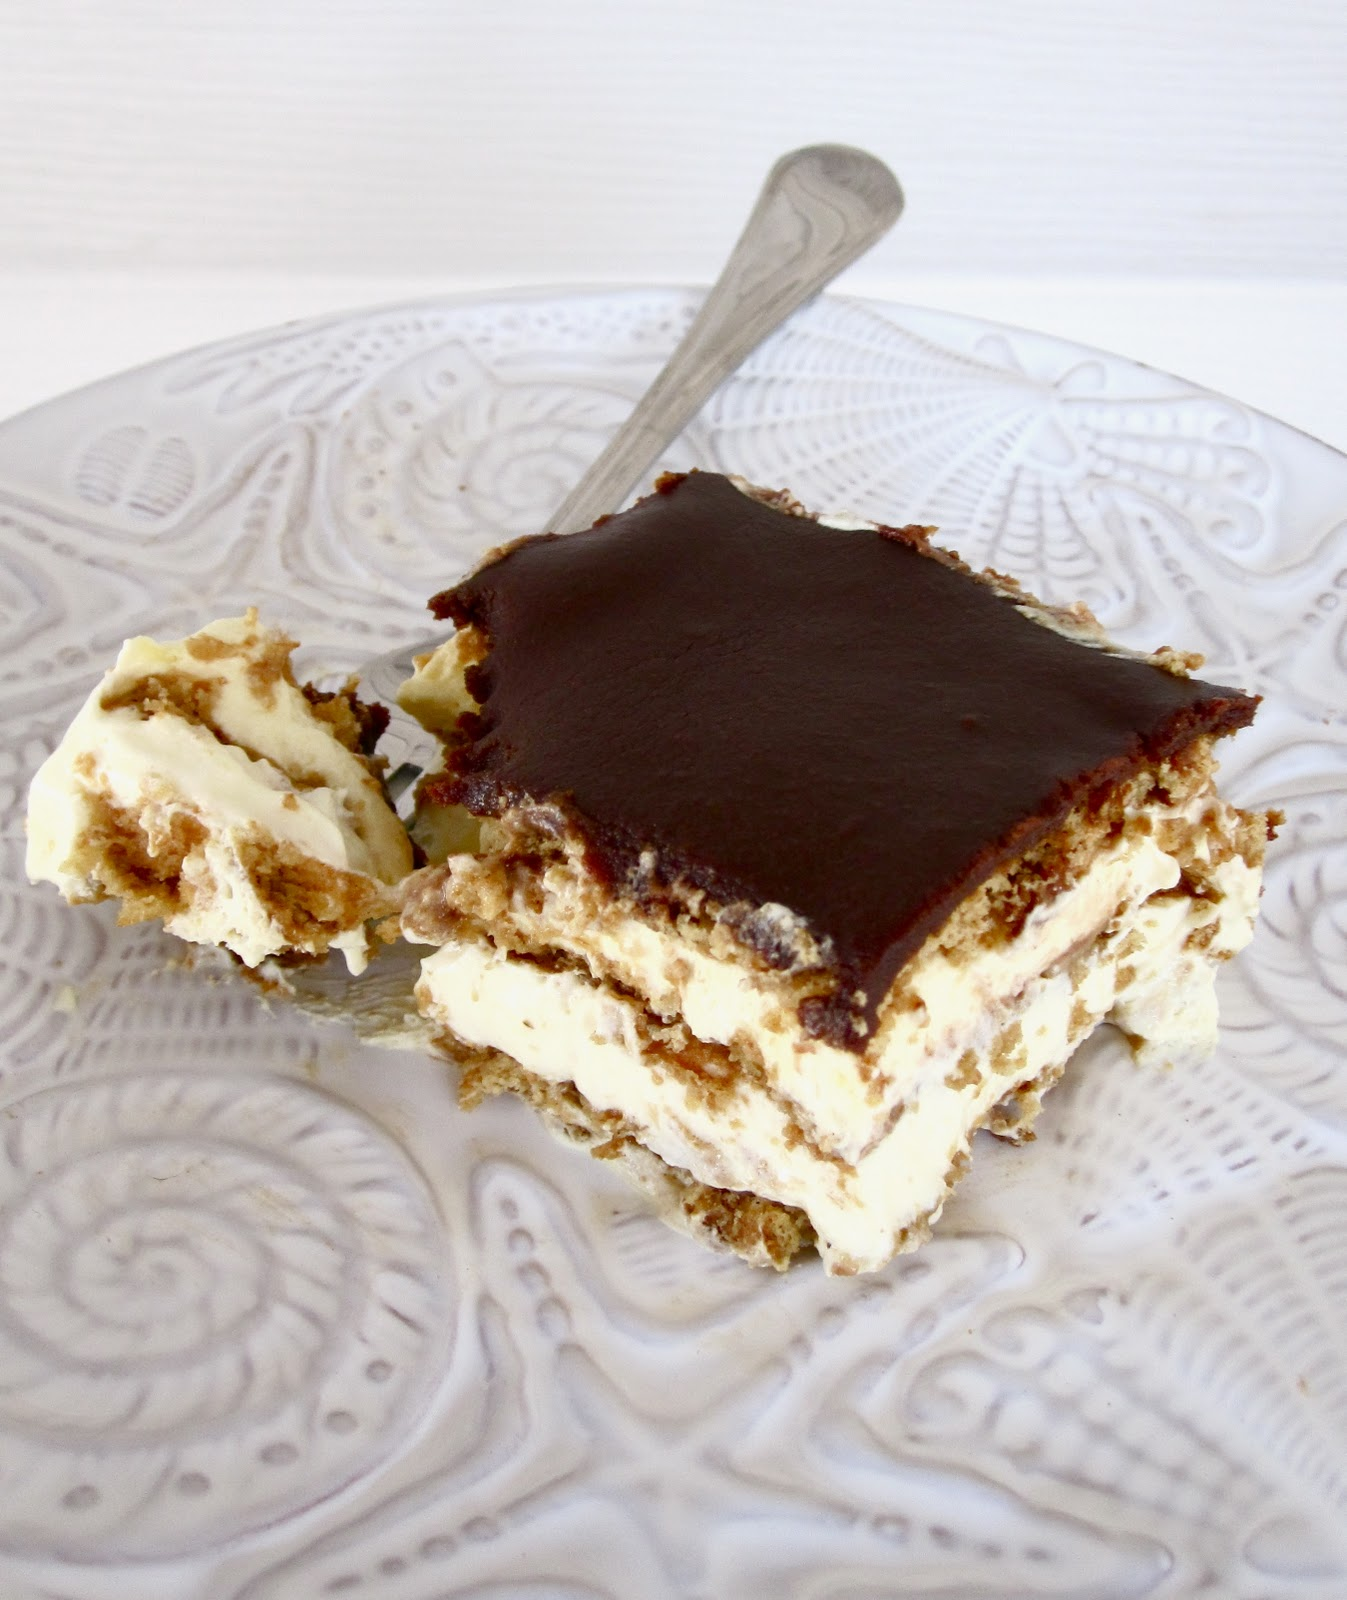 Images Of Chocolate Eclair Cake : Hubby Approved Recipes: Chocolate Eclair Cake